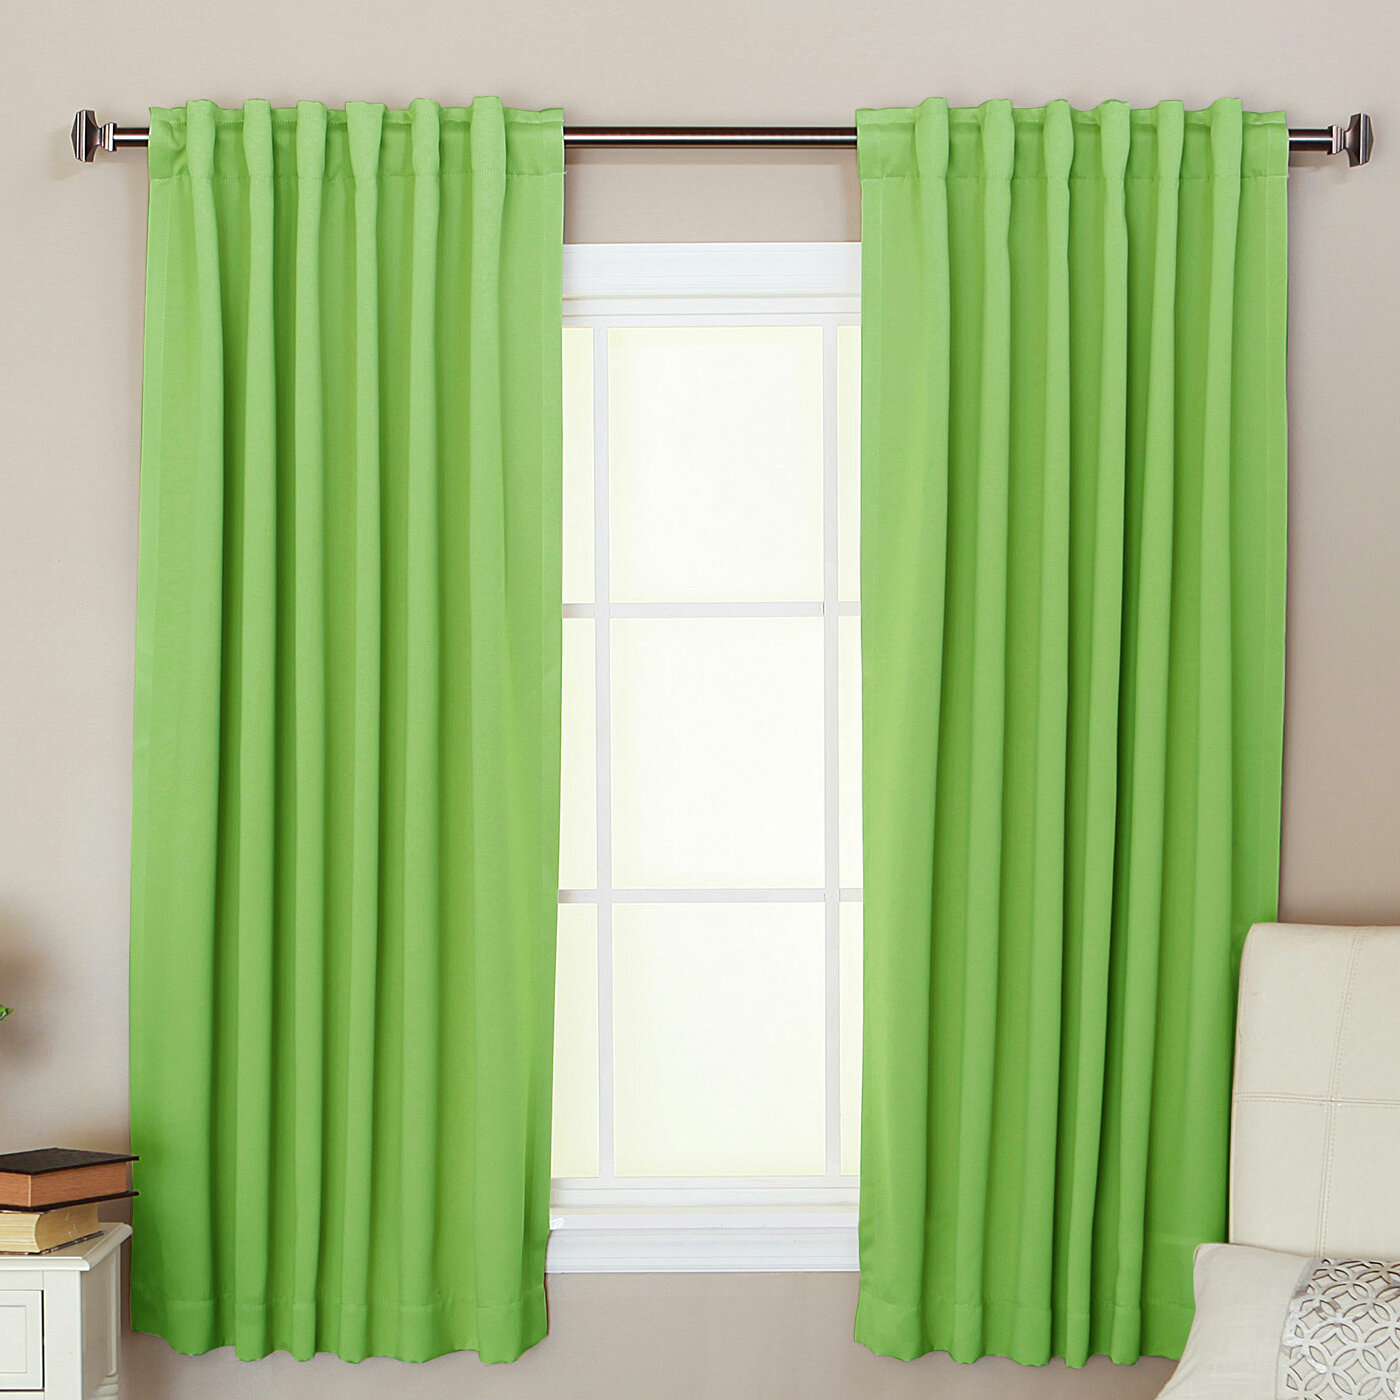 Green Blackout Curtain Panels Best Home Decorating Ideas